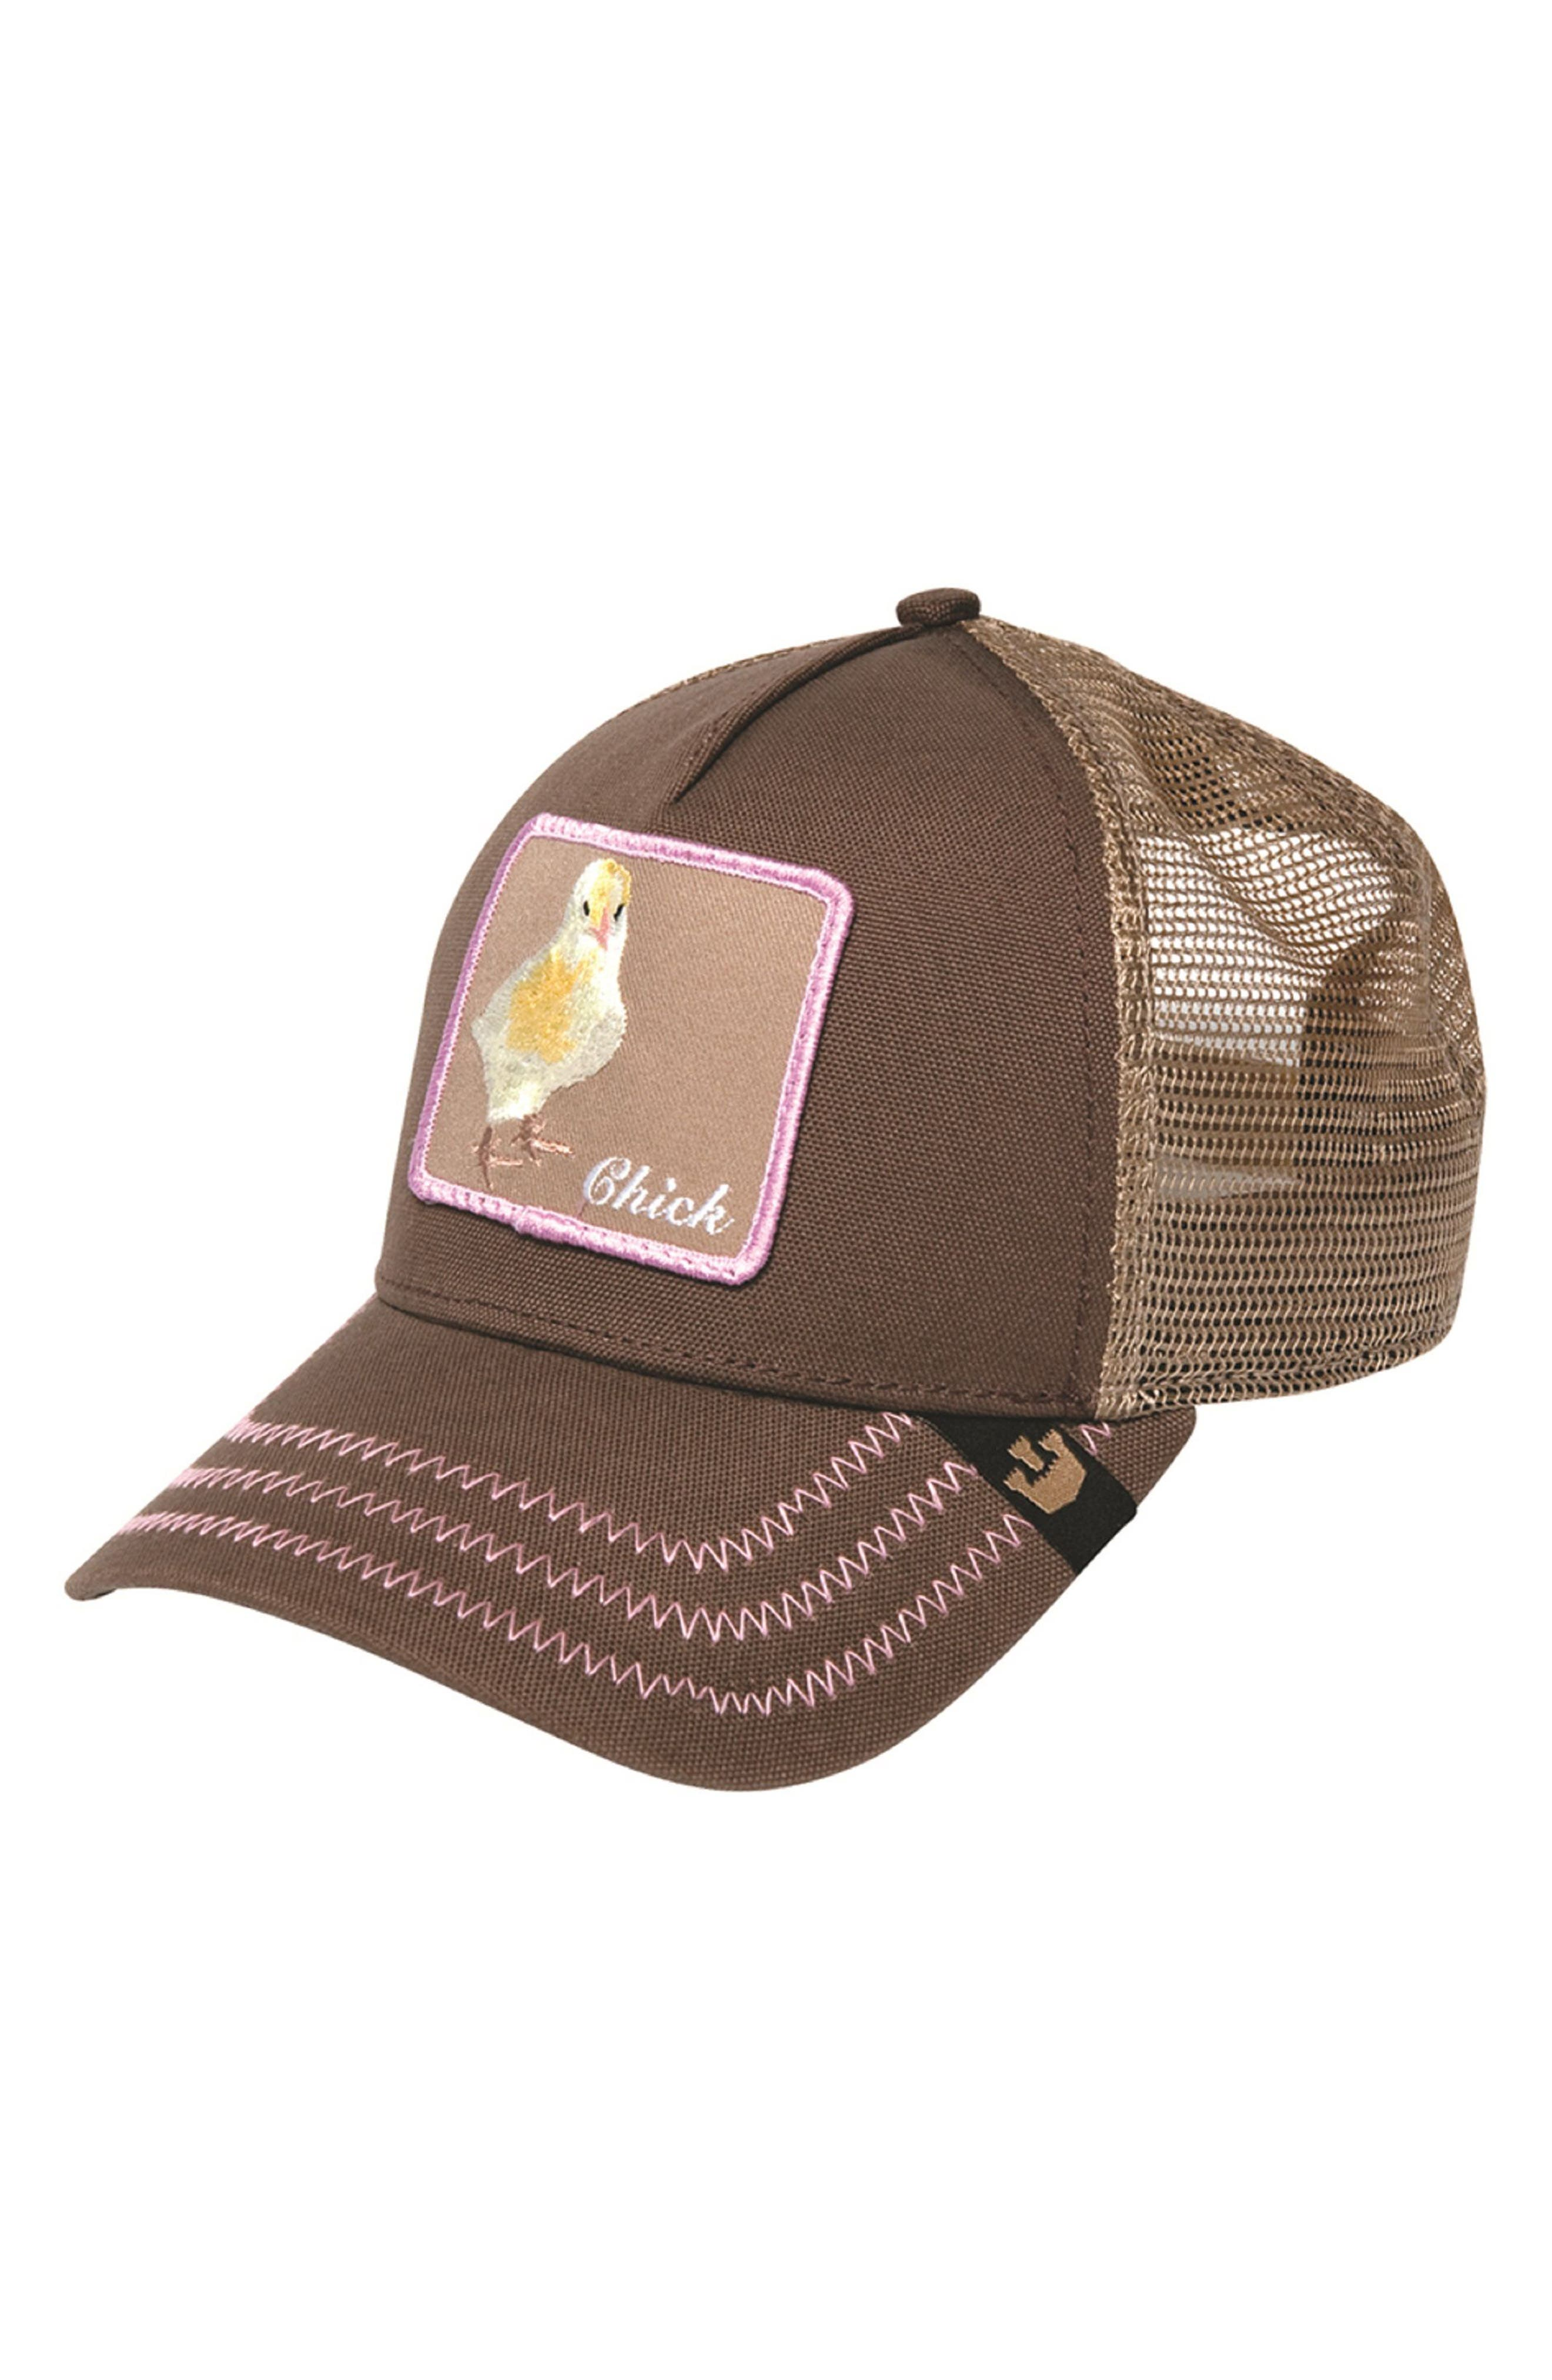 Chicky Boom Trucker Hat,                         Main,                         color, 201